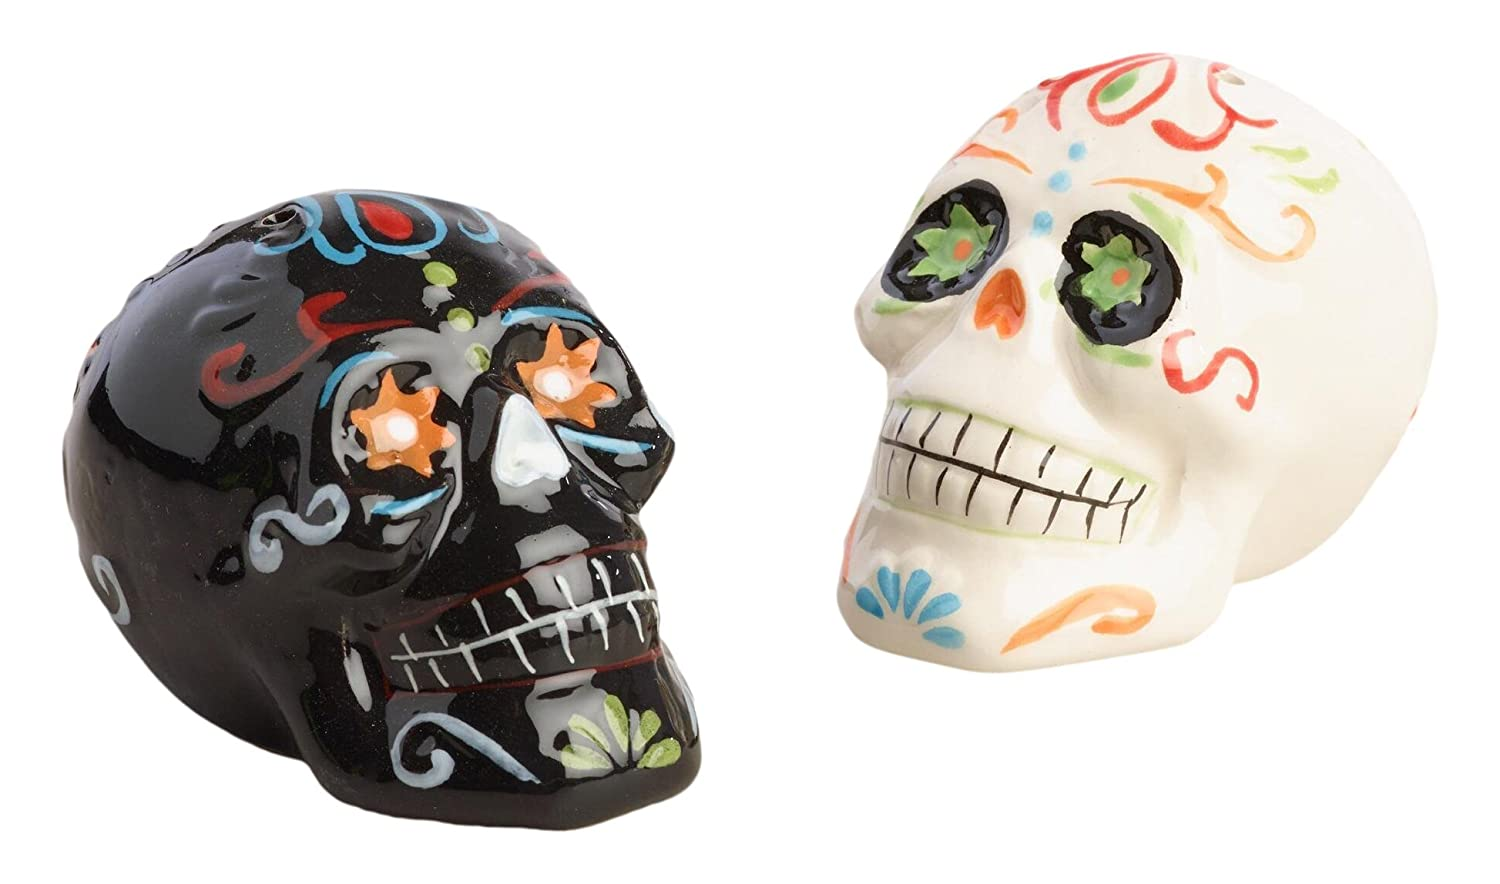 and Himalayan Salts Spices Dispenser Skull Day of the Dead Los Muertos Perfect for your Favorite Pepper World Market Ceramic Salt and Pepper Shakers Set Black /& White WM B01M9F3DT4 Set of 2 Kosher